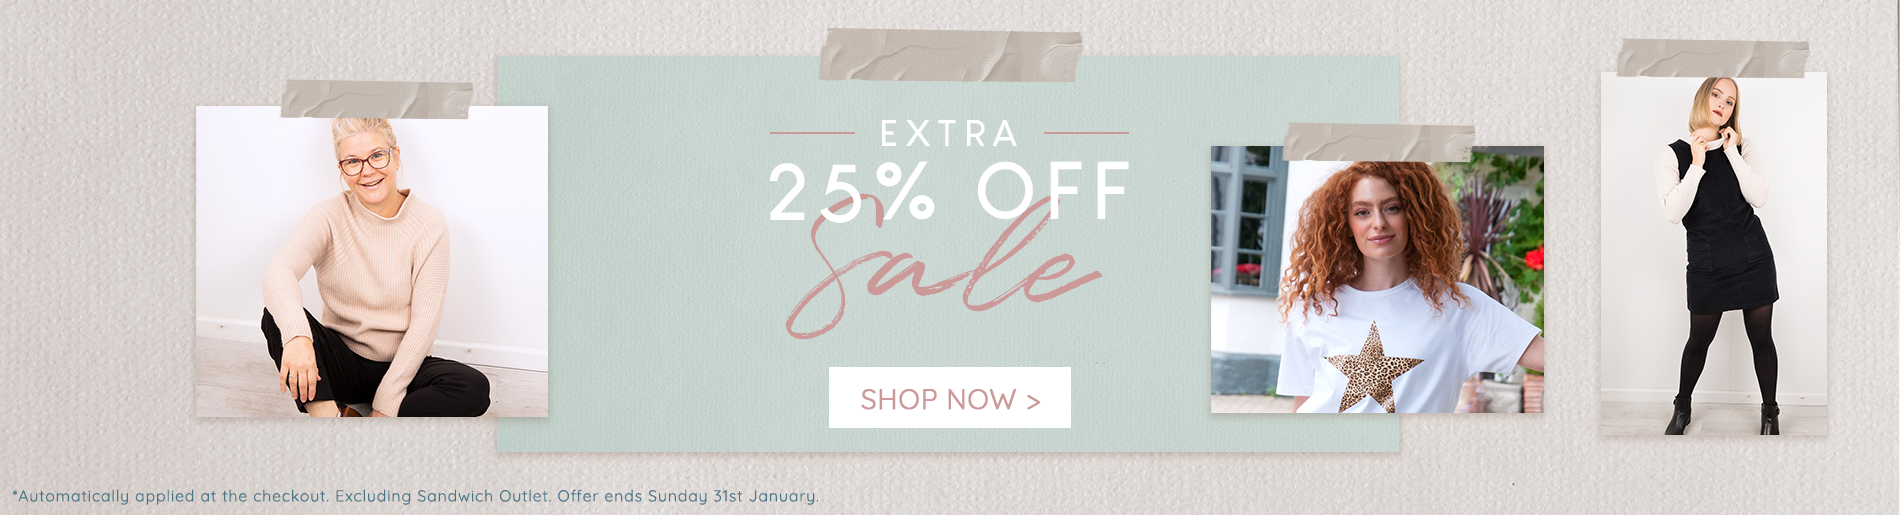 18-01 Extra 25% Off Sale